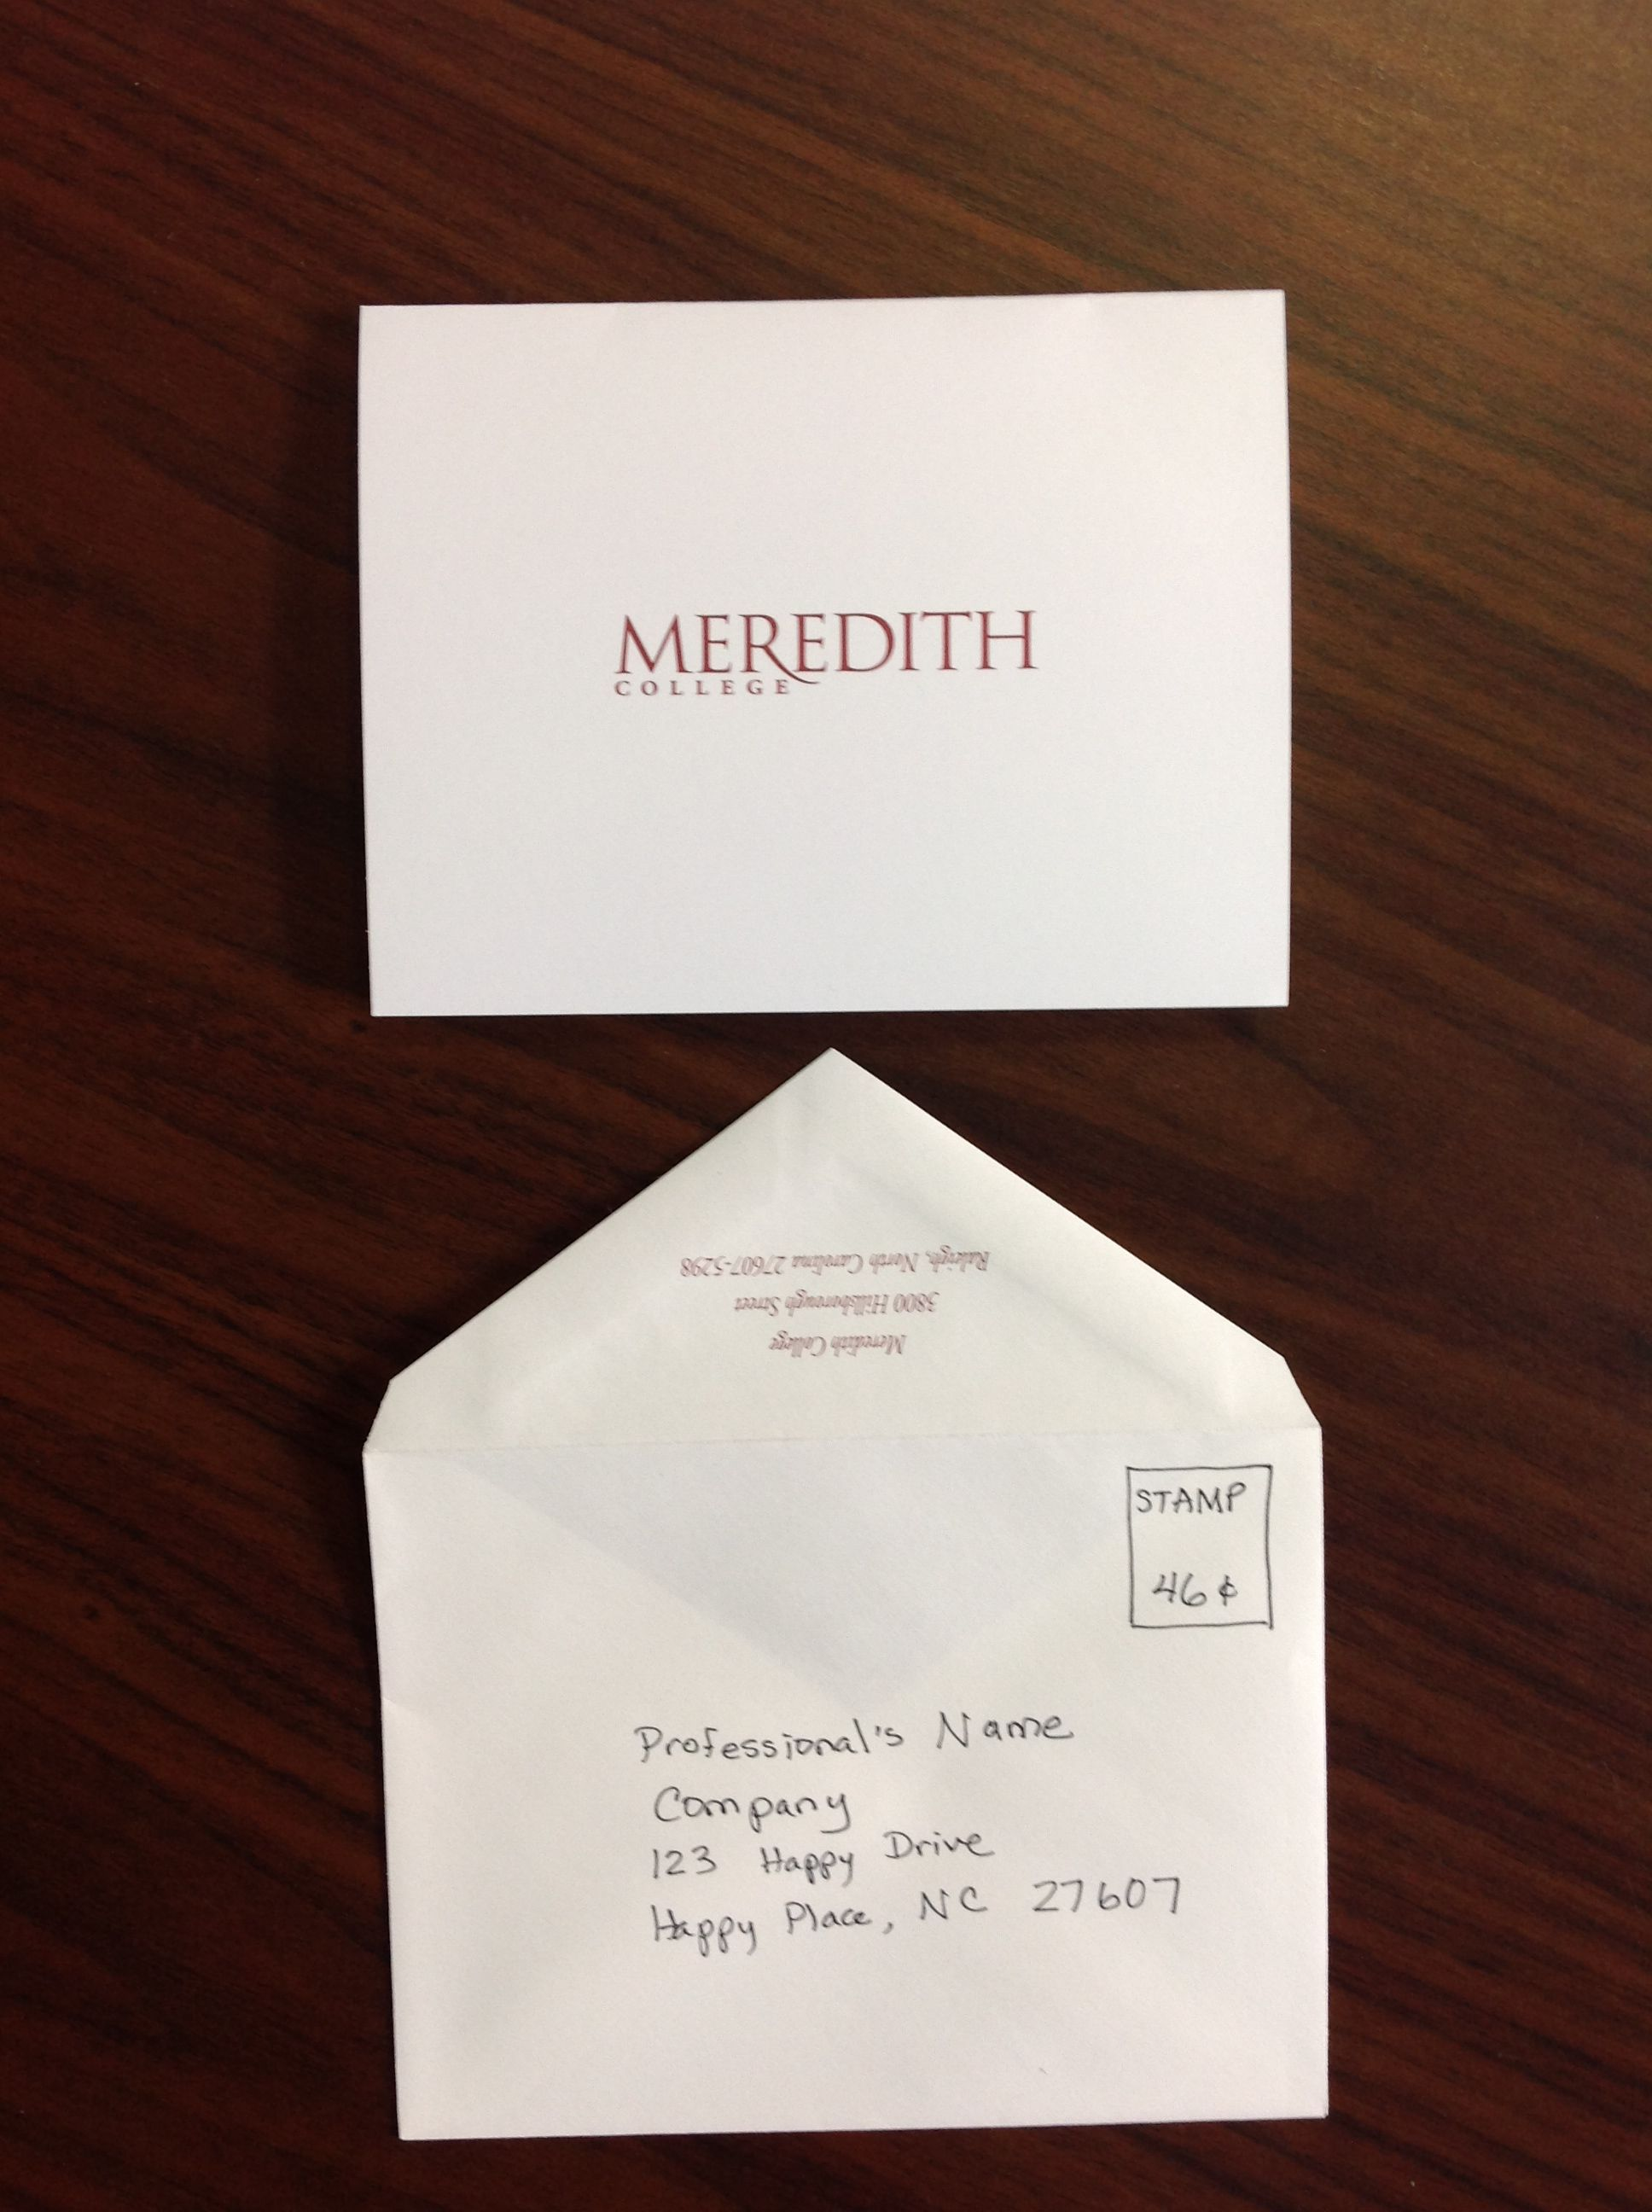 send handwritten thank you cards within 24 hours of your interview